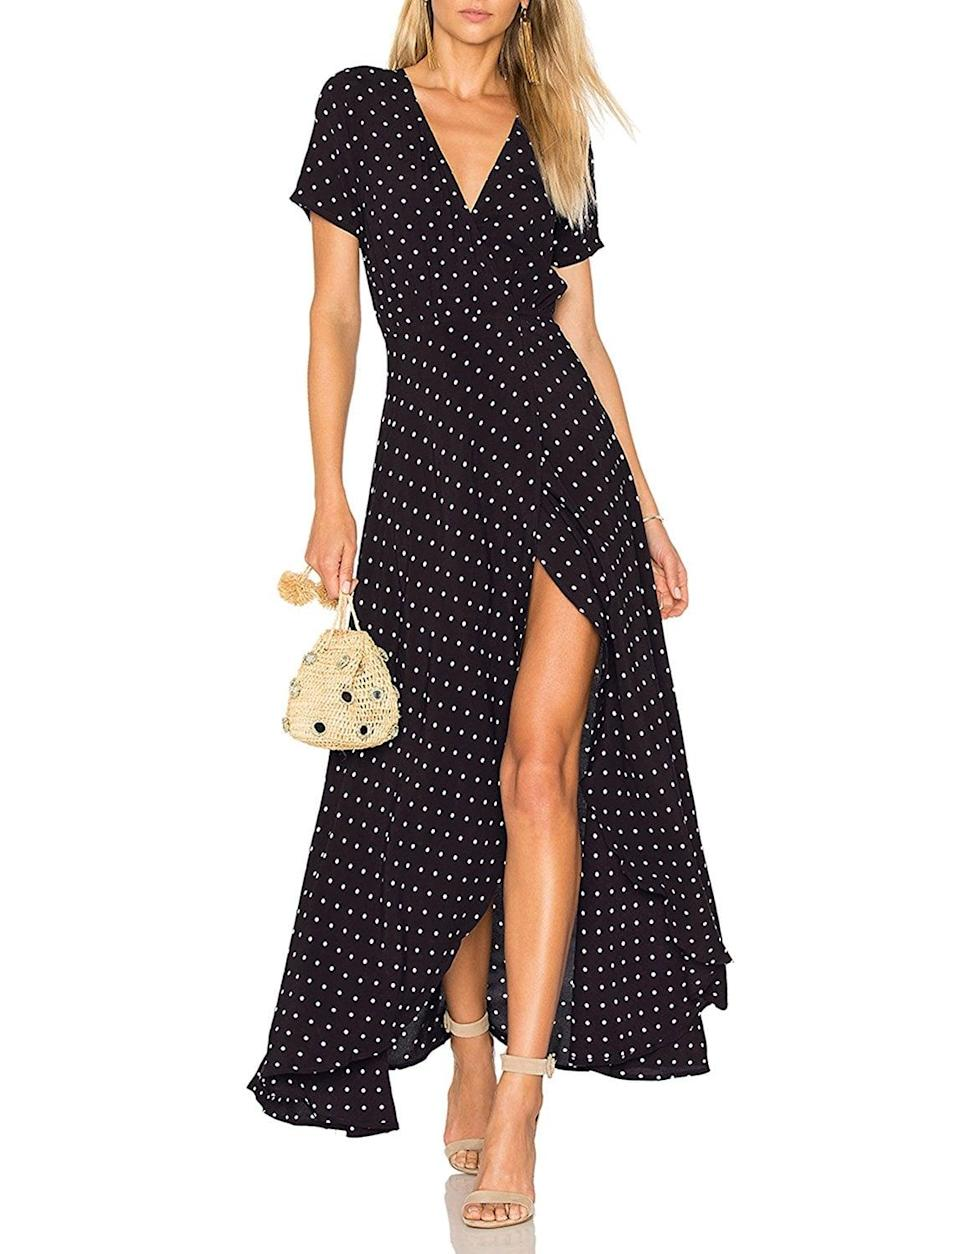 <p>Pair this <span>May&amp;Maya Wrap Maxi Dress</span> ($10 - $16) with heels for your next event, and you'll definitely stand out. </p>